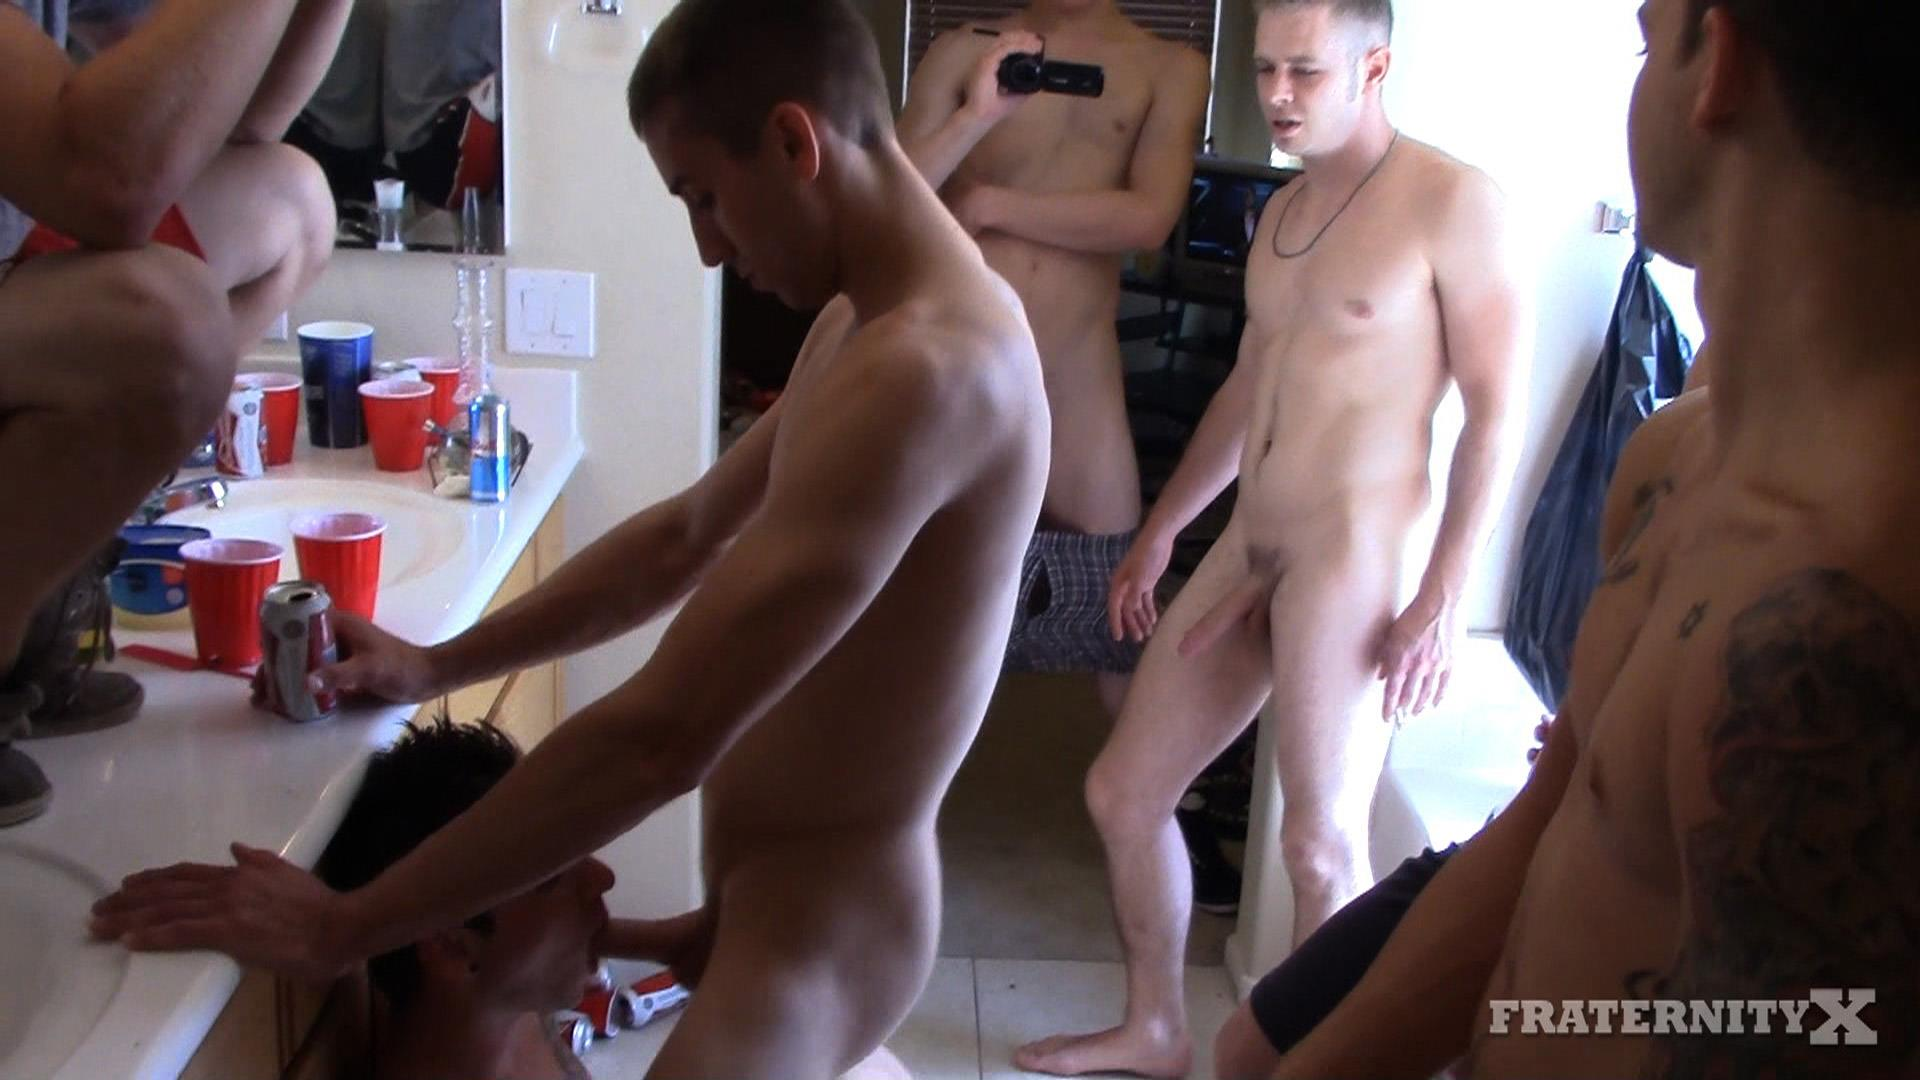 Fraternity-X-Frenchie-Frat-Guys-Bareback-Gang-Bang-In-The-Shower-Amateur-Gay-Porn-15 Real Fraternity Boys Barebacking In The Frat Shower